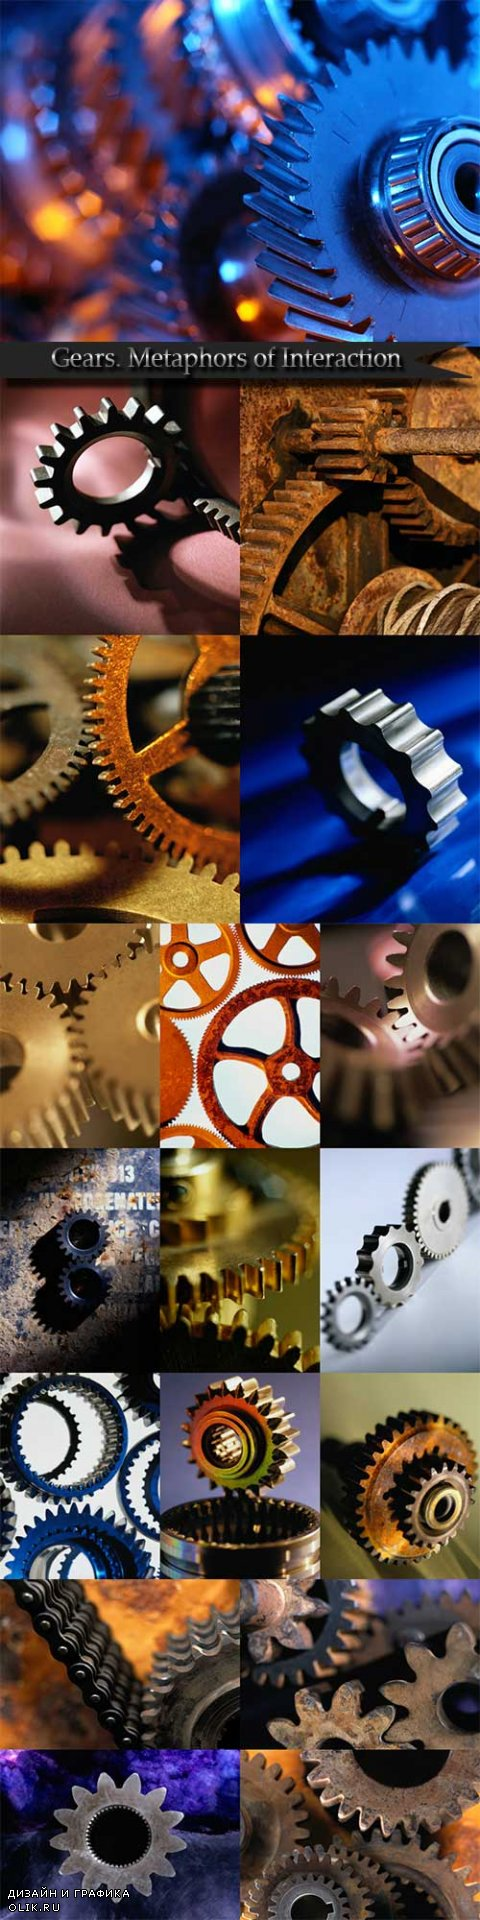 Gears. Metaphors of Interaction